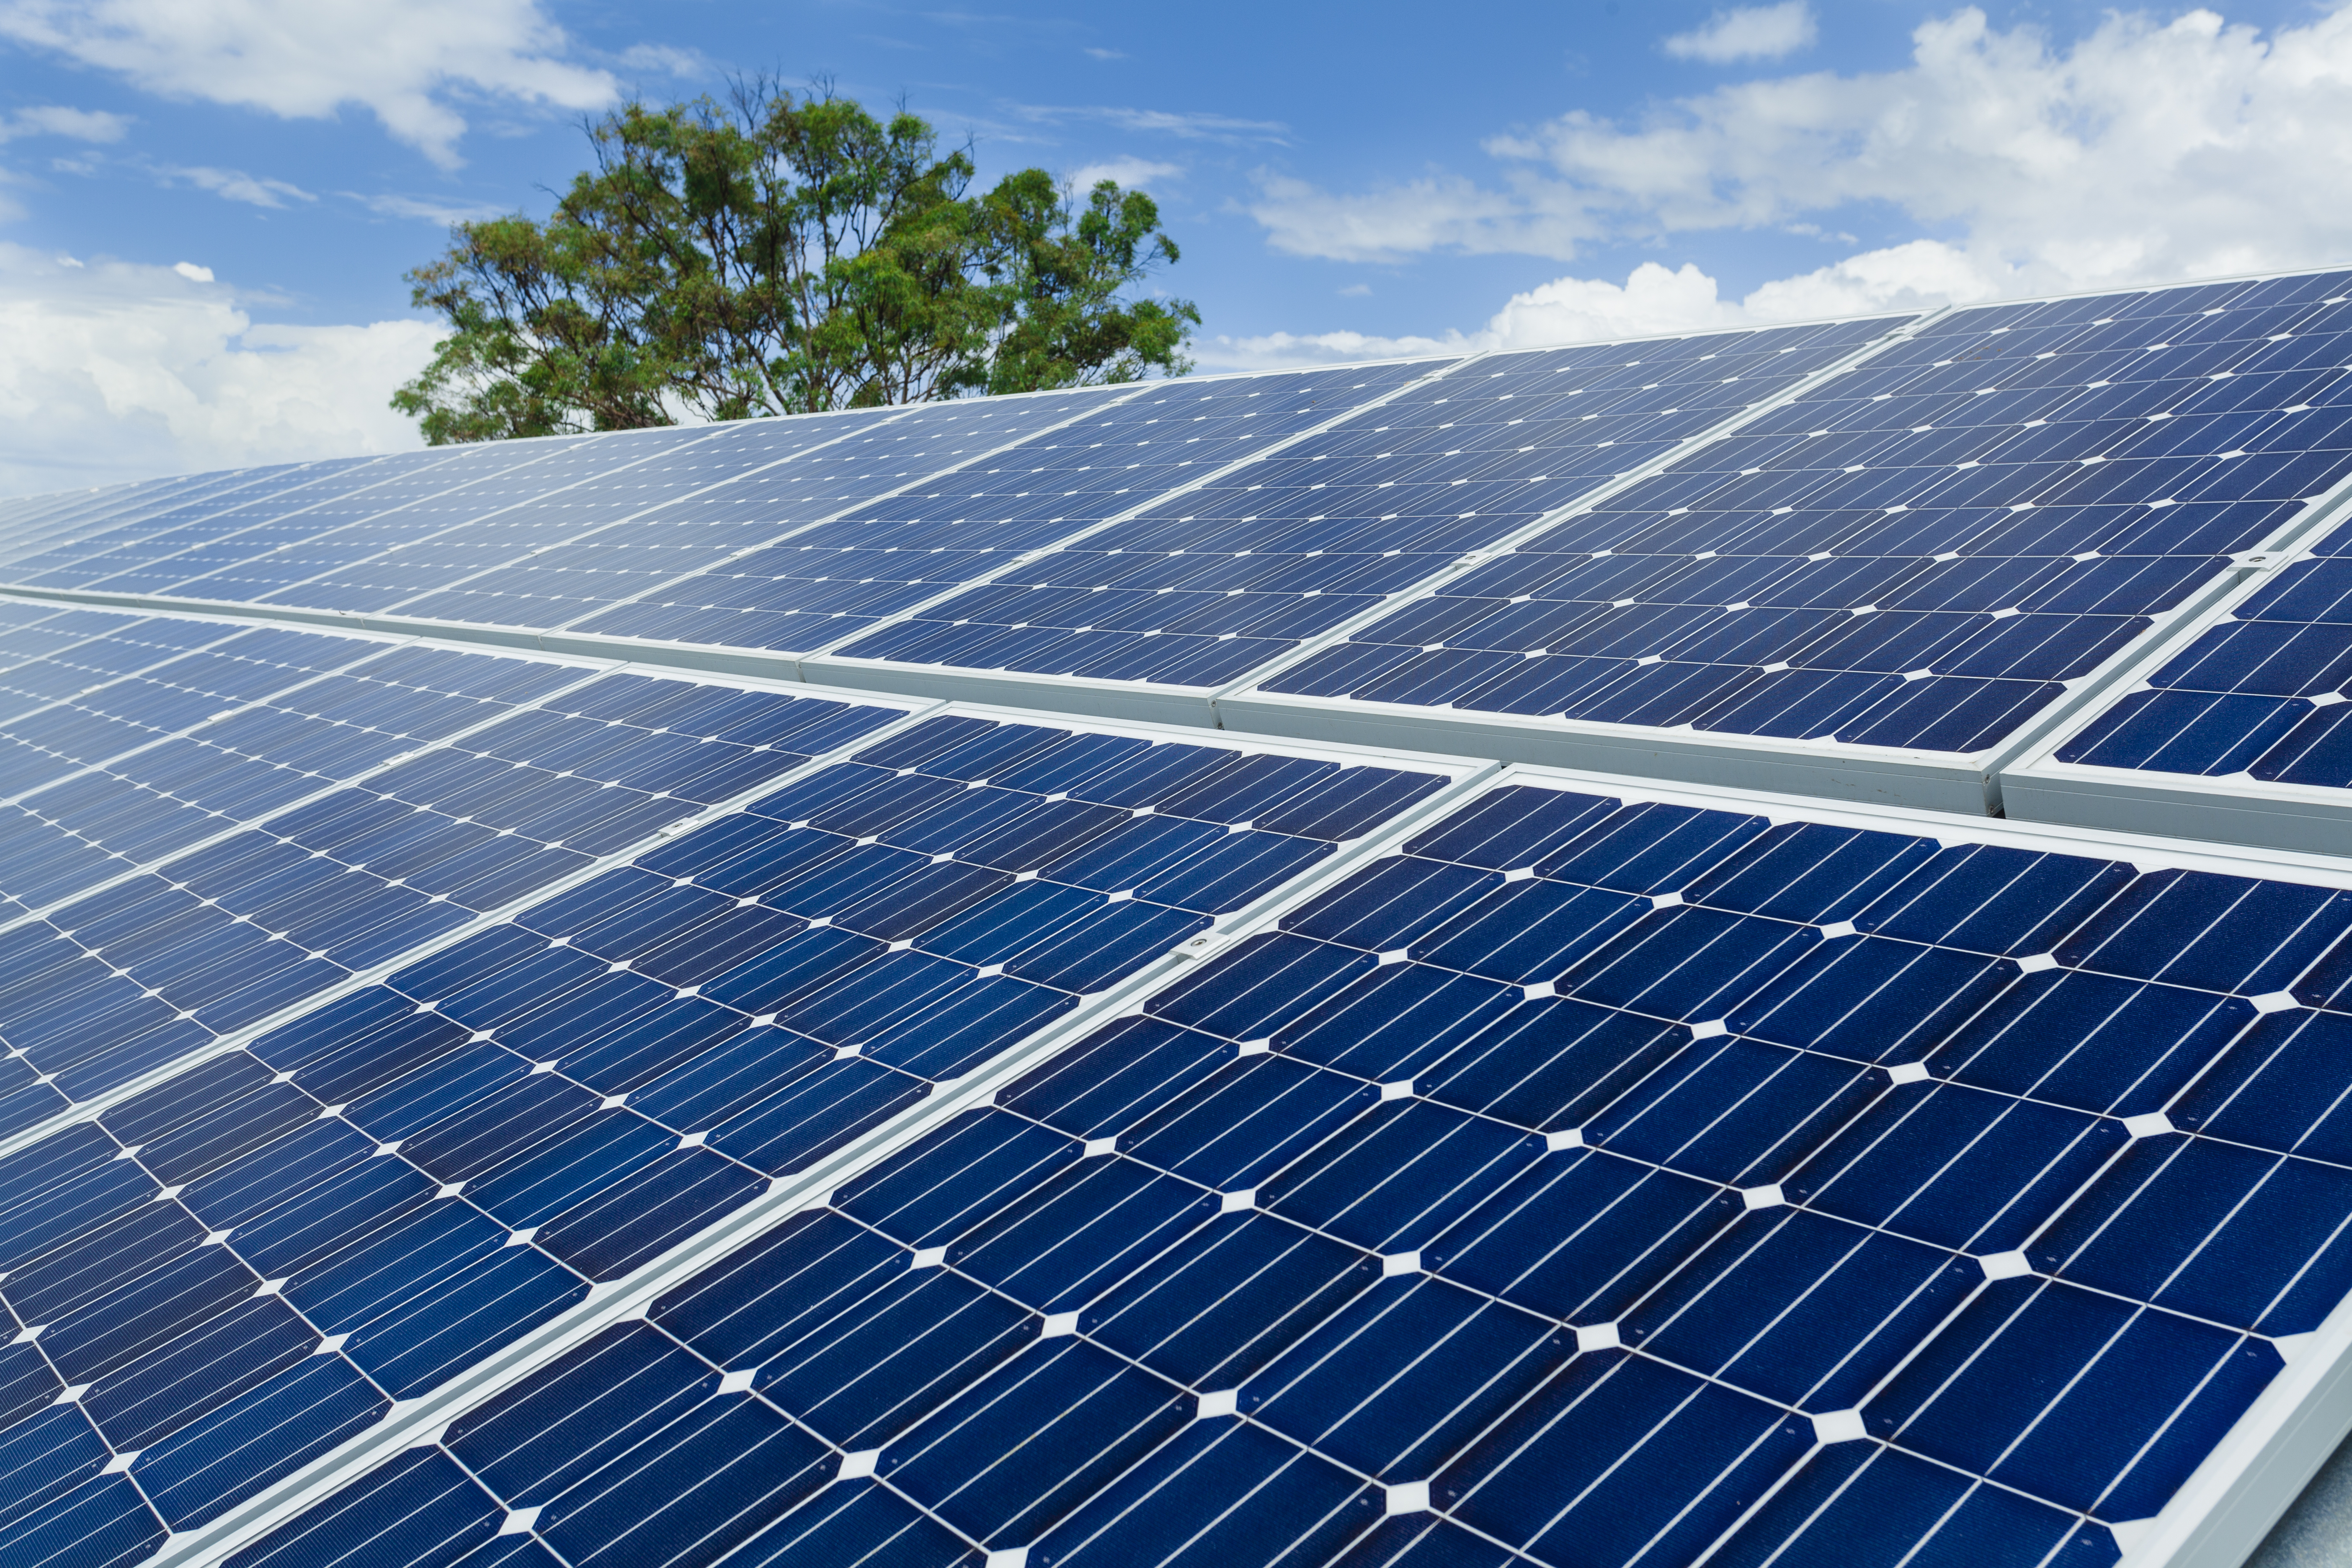 Solar-Panels-on-Factory-Roof-nice-sky-background_0